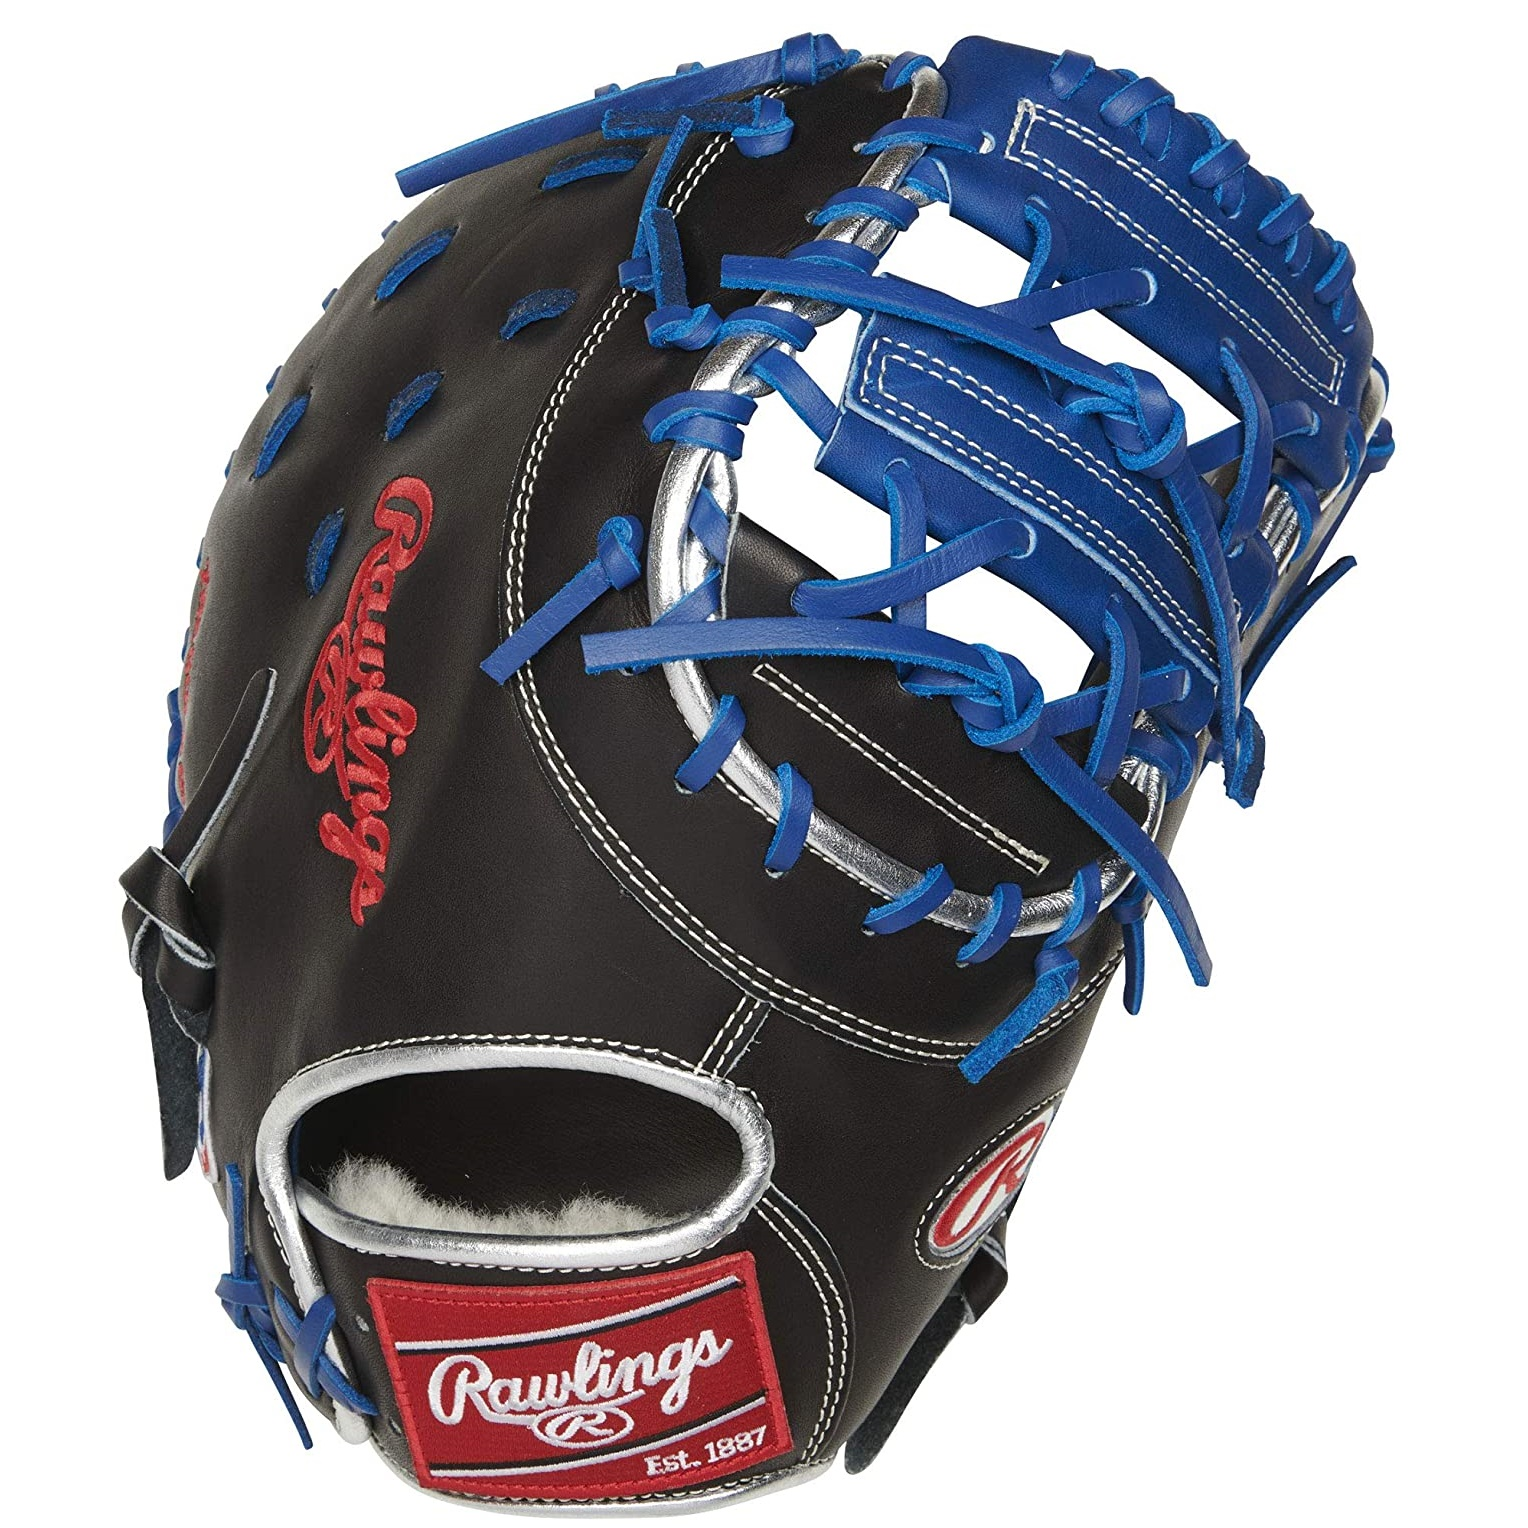 rawlings-pro-preferred-anthony-rizzo-first-base-mitt-12-75-inch-right-hand-throw PROSAR4B-RightHandThrow   Anthony Rizzo is one of the best fielding first baseman in